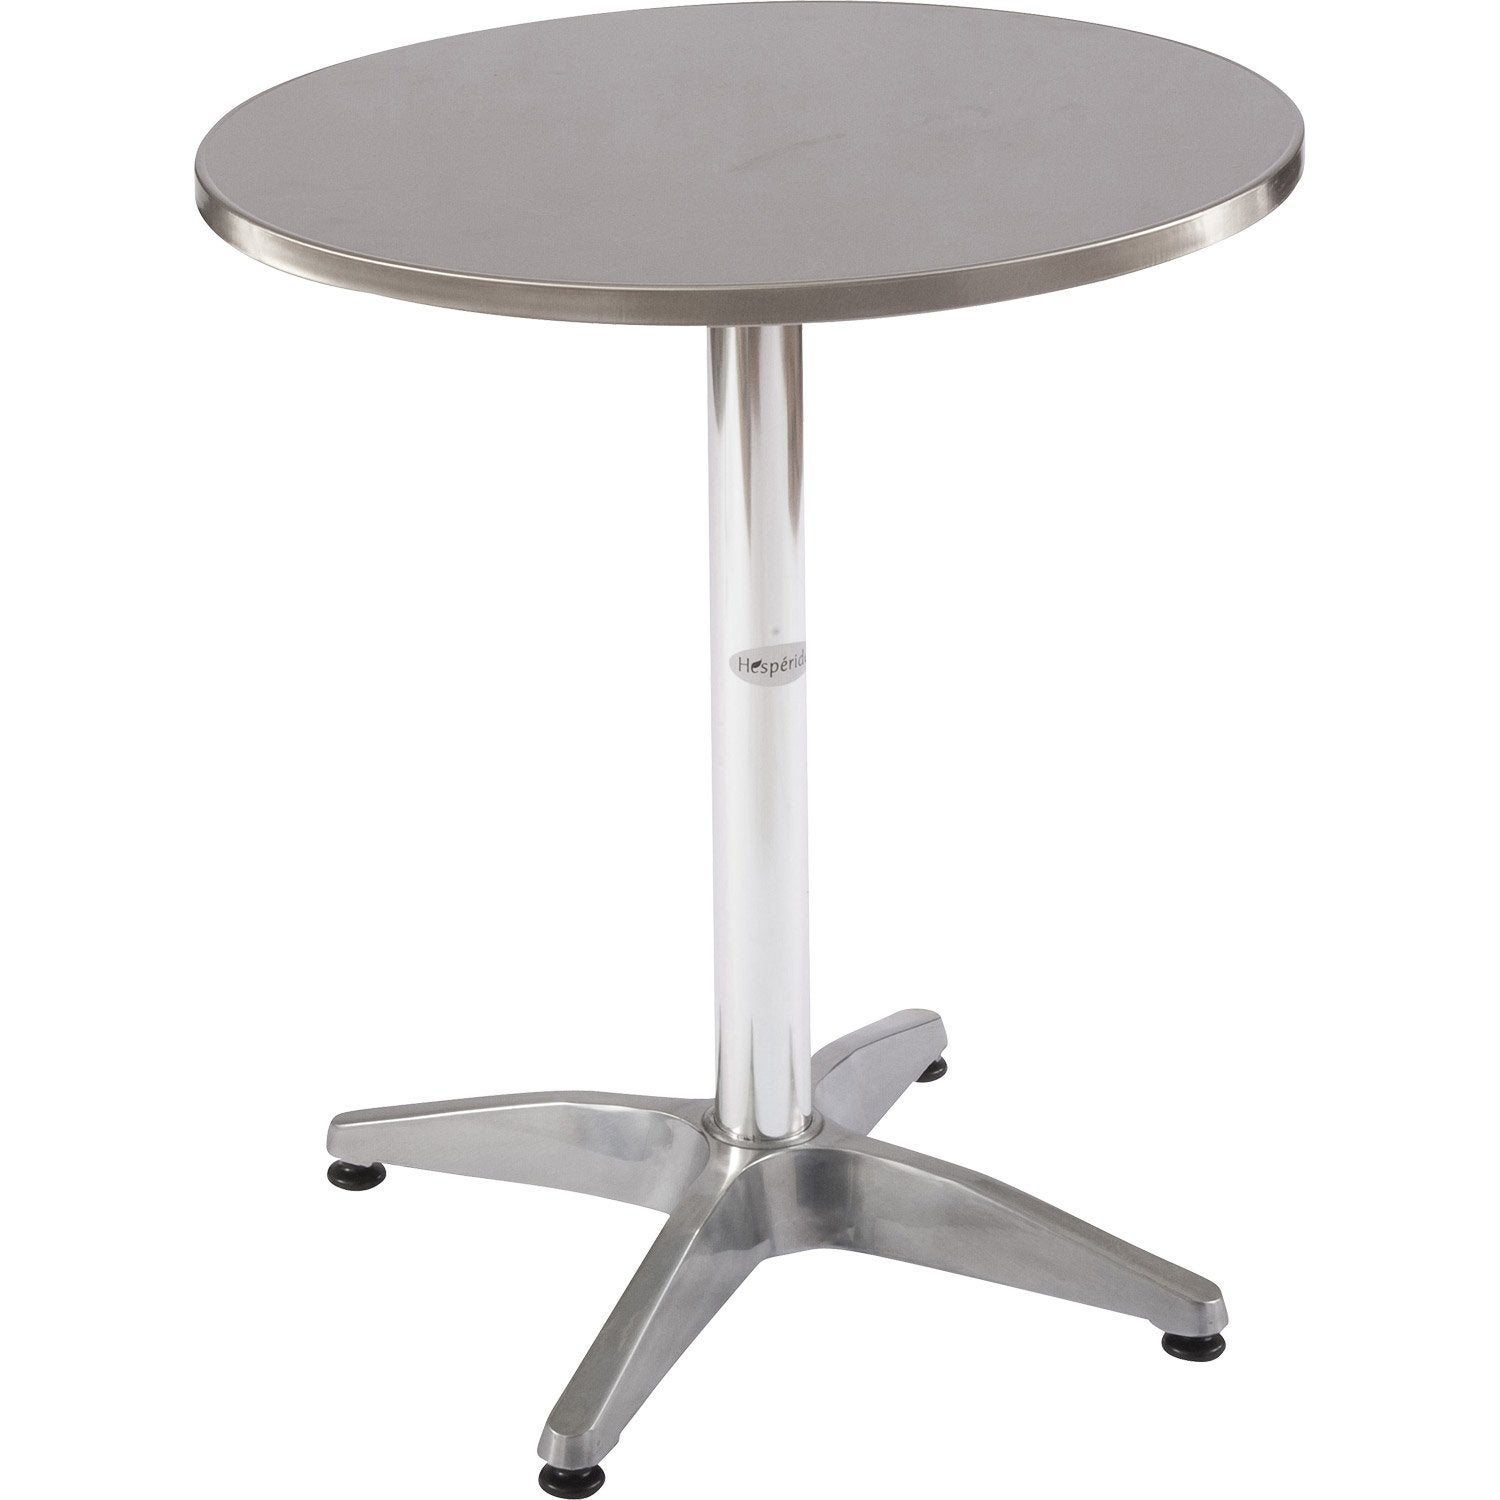 Table basse cuidadella ronde gris 2 personnes leroy merlin for Leroy merlin table basse